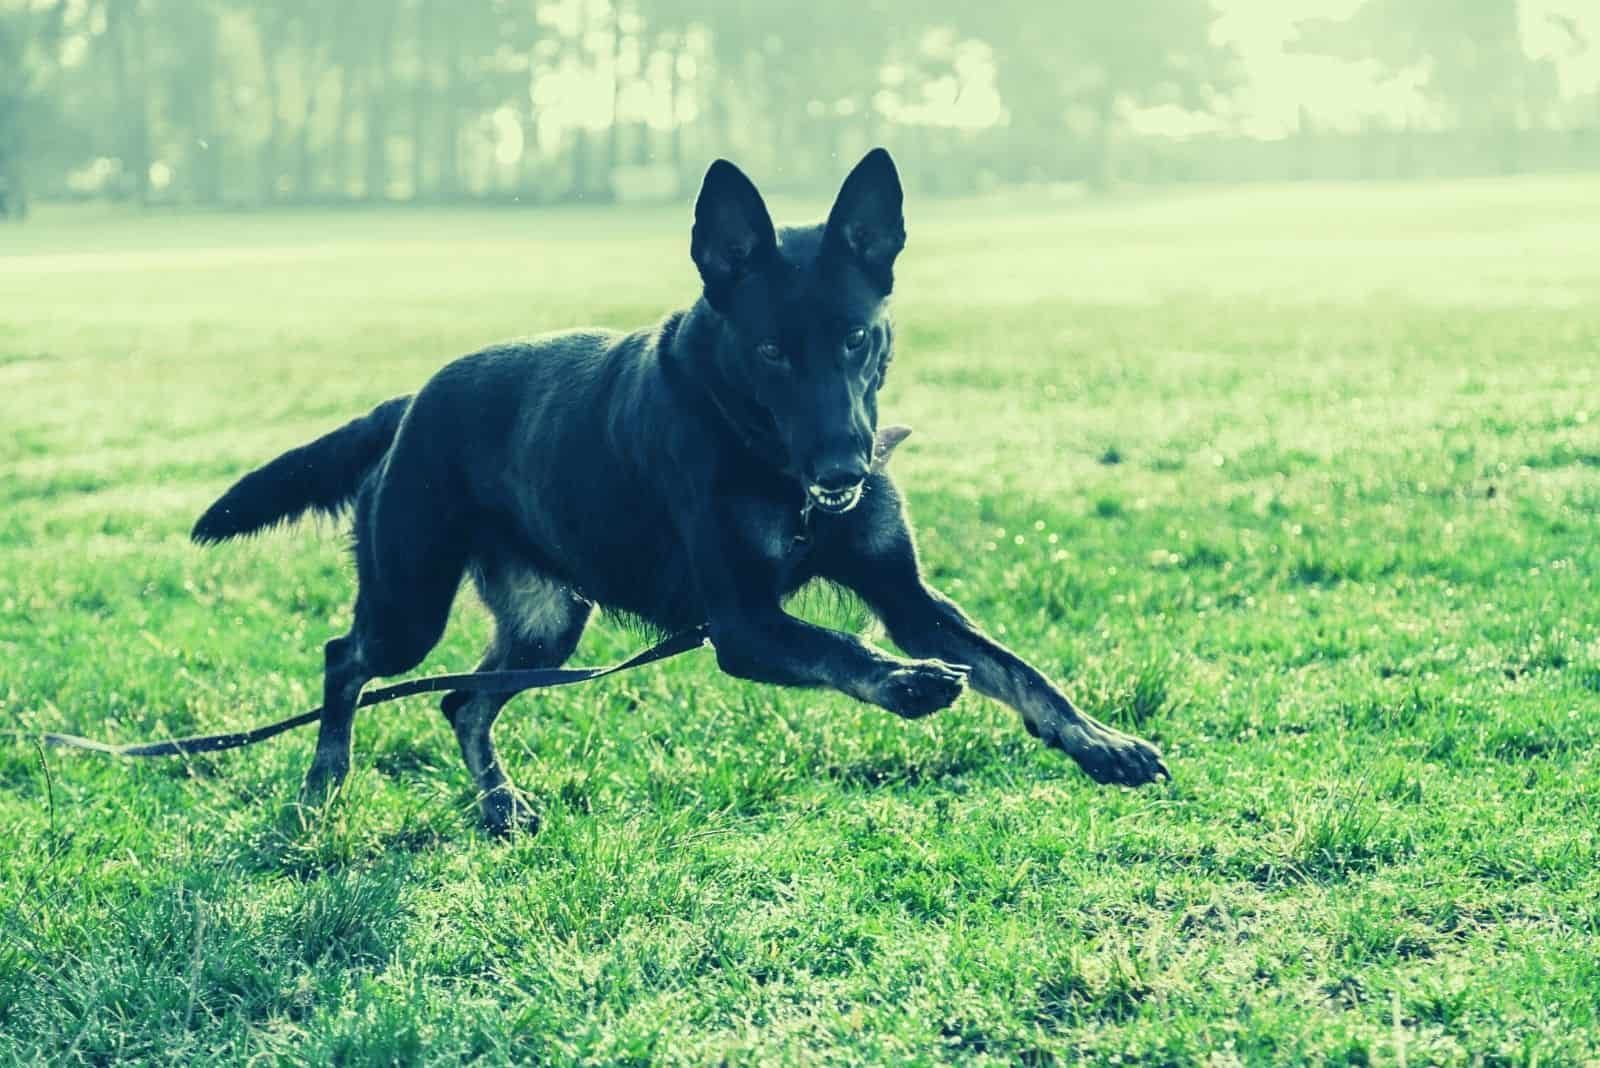 a black german shepherd in action running on the ground